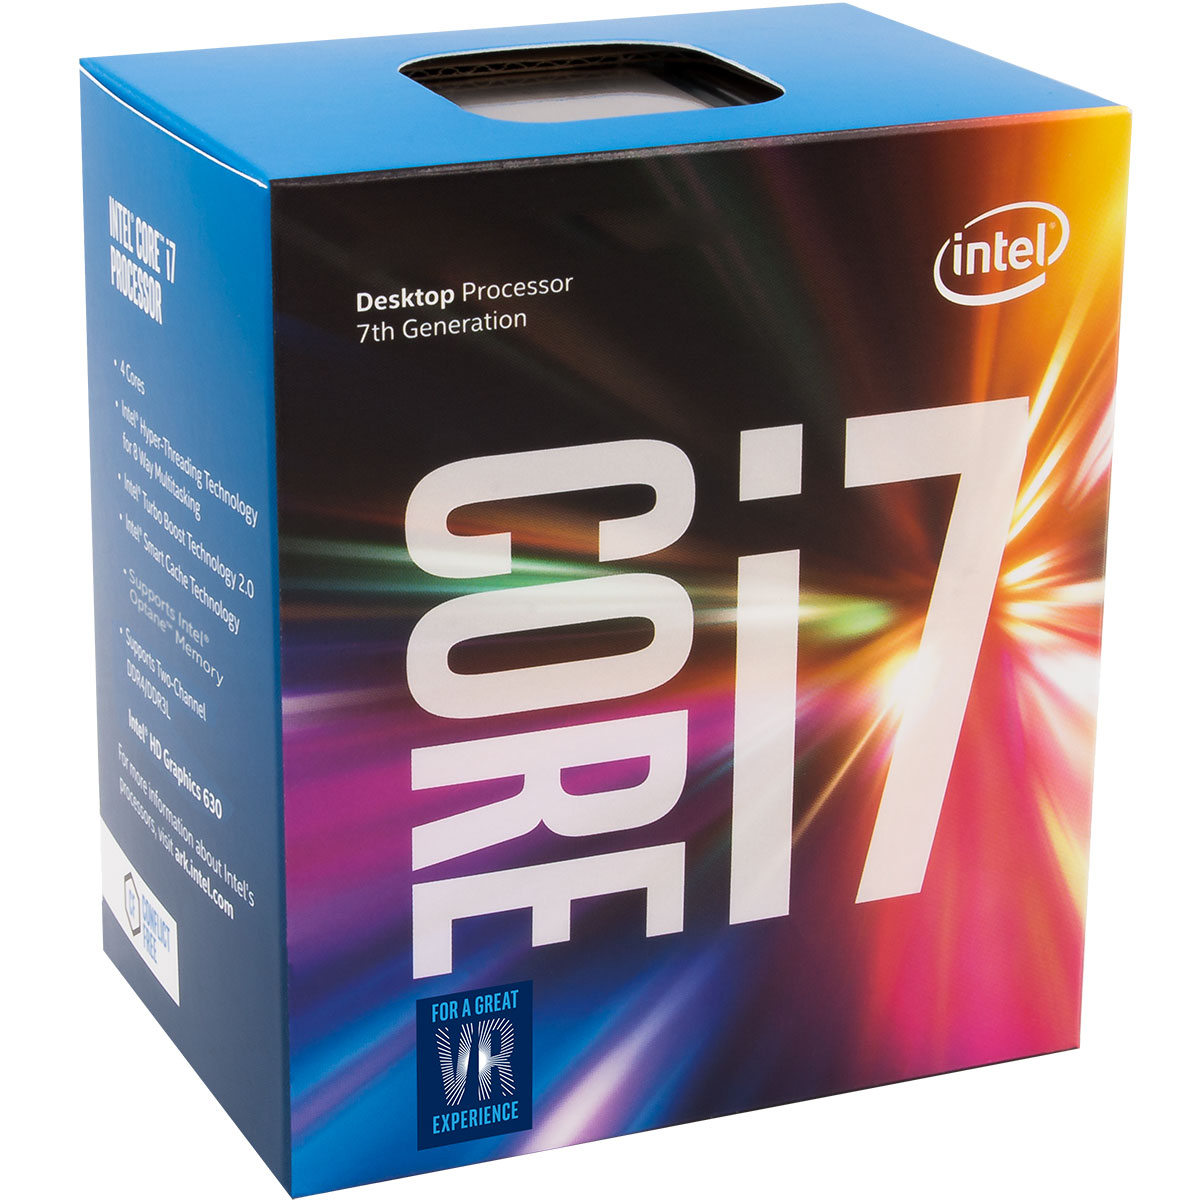 Processeur Intel Core i7 7700 Quad Core (3.60 GHz) Socket 1151 - Cache 8 Mo (Box), informatique ile de la réunion